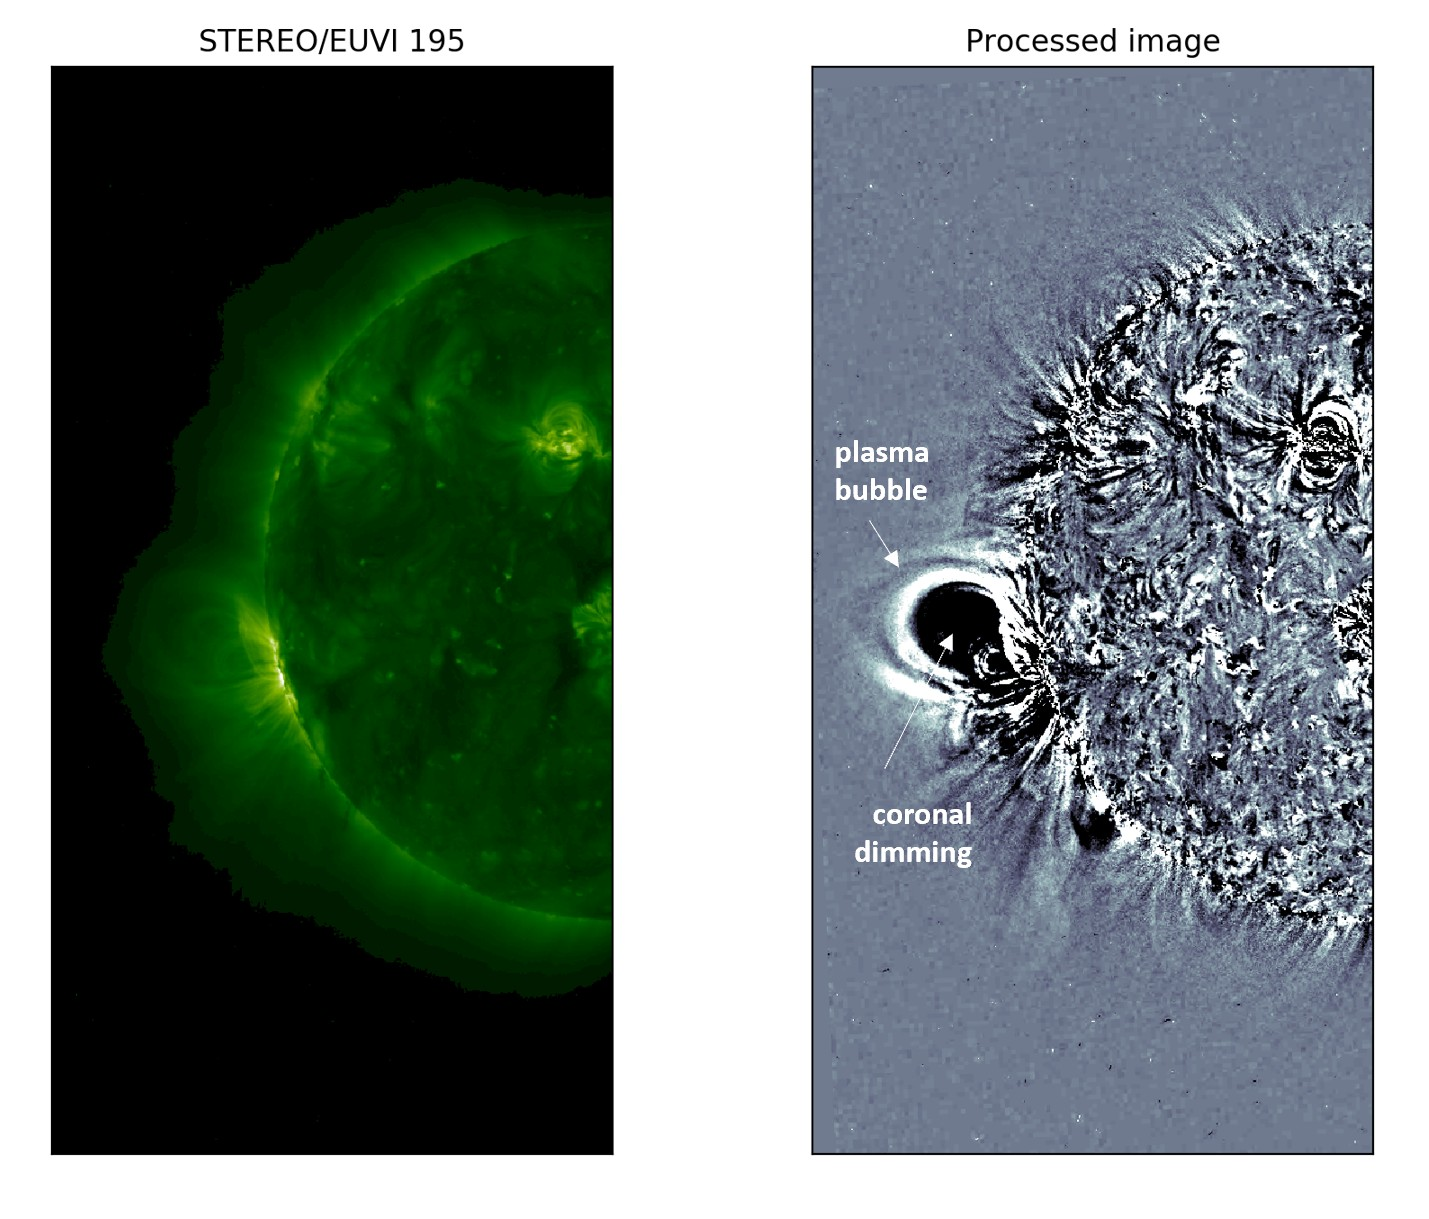 STEREO/EUVI, Coronal dimming and the associated coronal mass ejection